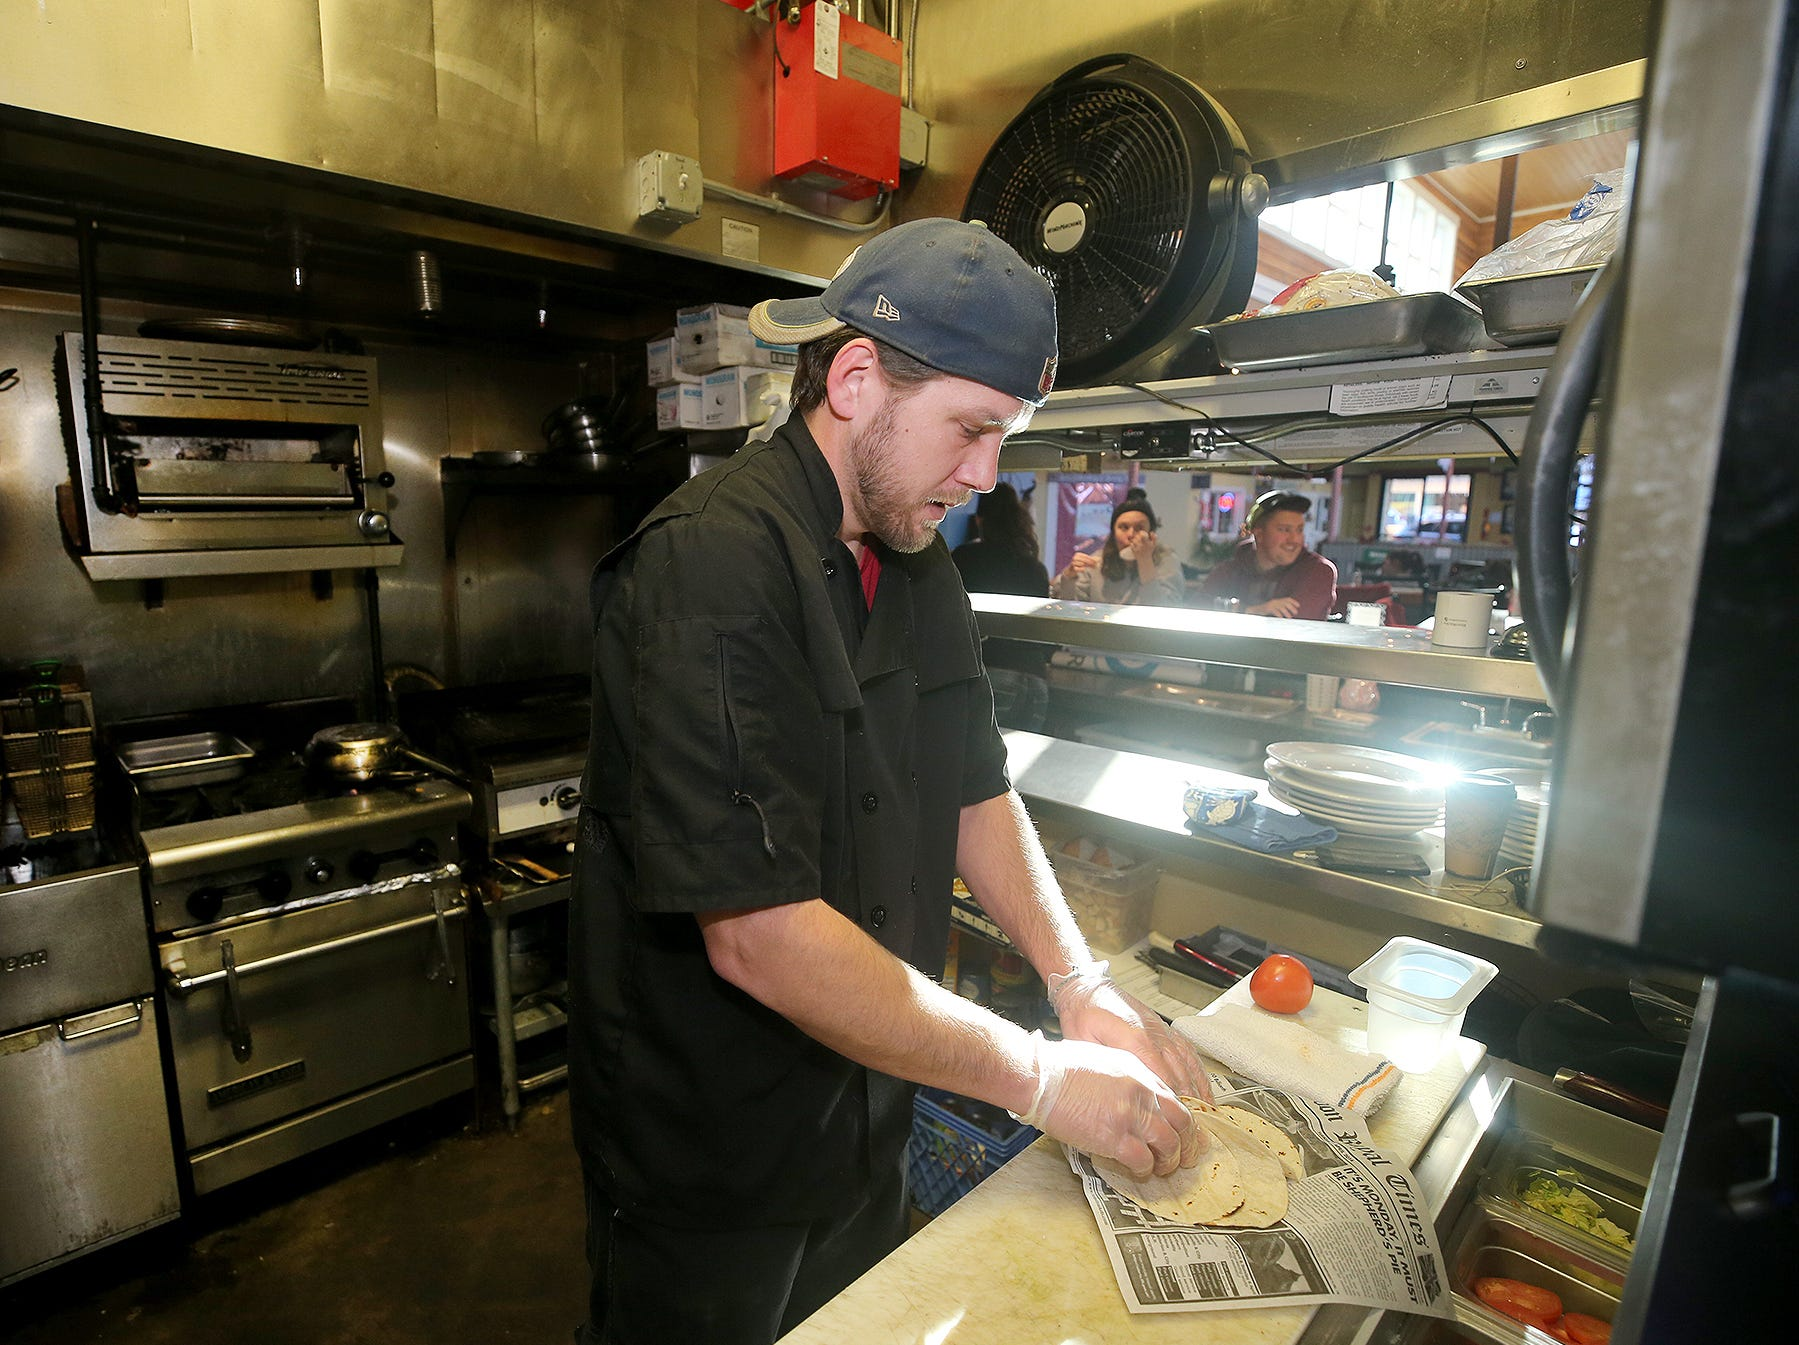 Chef Ian Buol makes a seafood taco at The Dock Bar & Eatery in the Port Orchard Market. The tacos are a popular item.